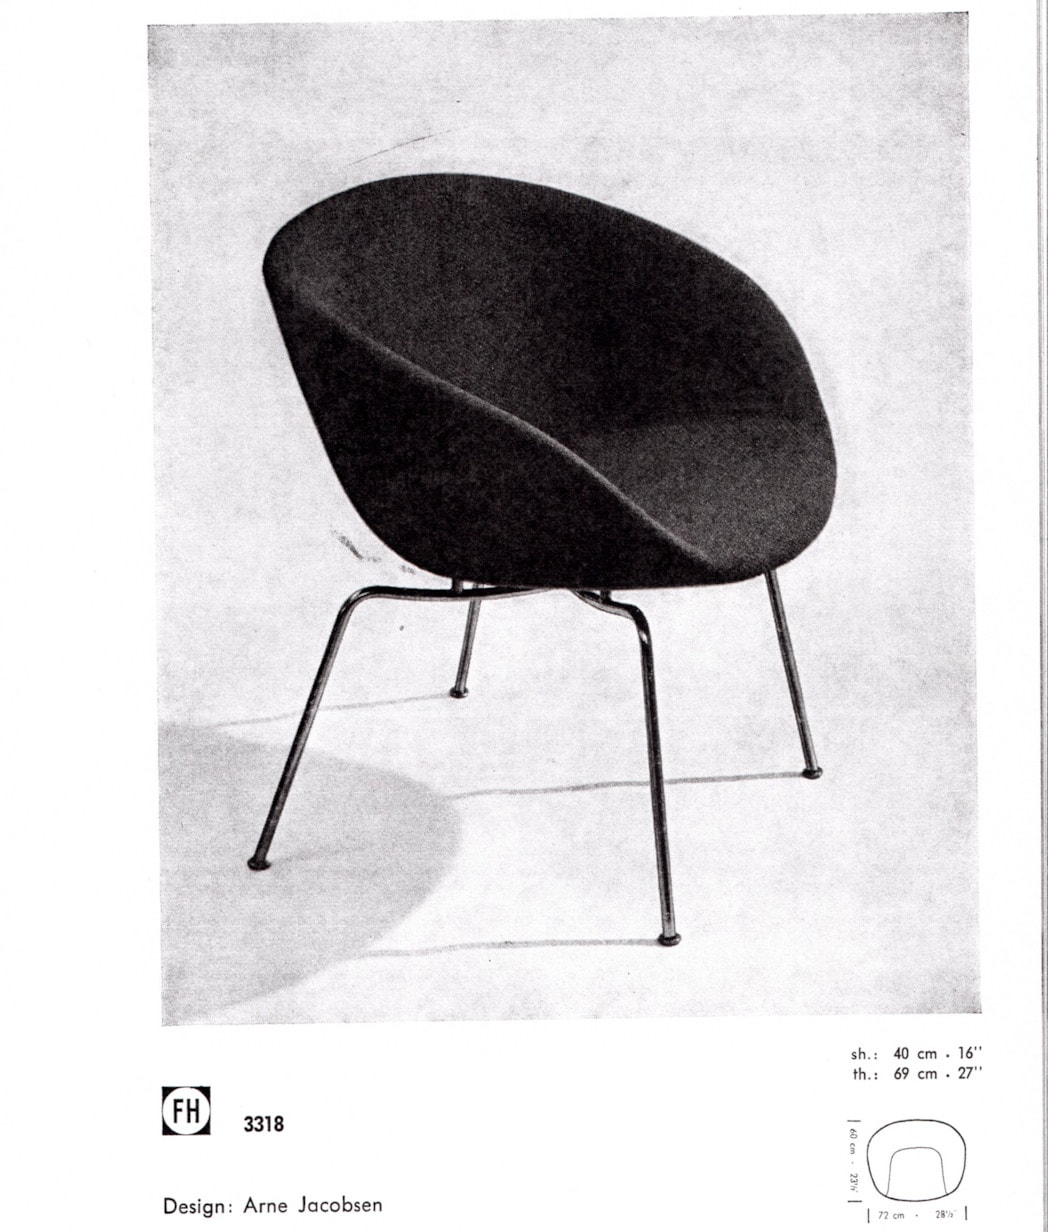 Arne Jacobsen design Fritz Hansen catalogue 1950's